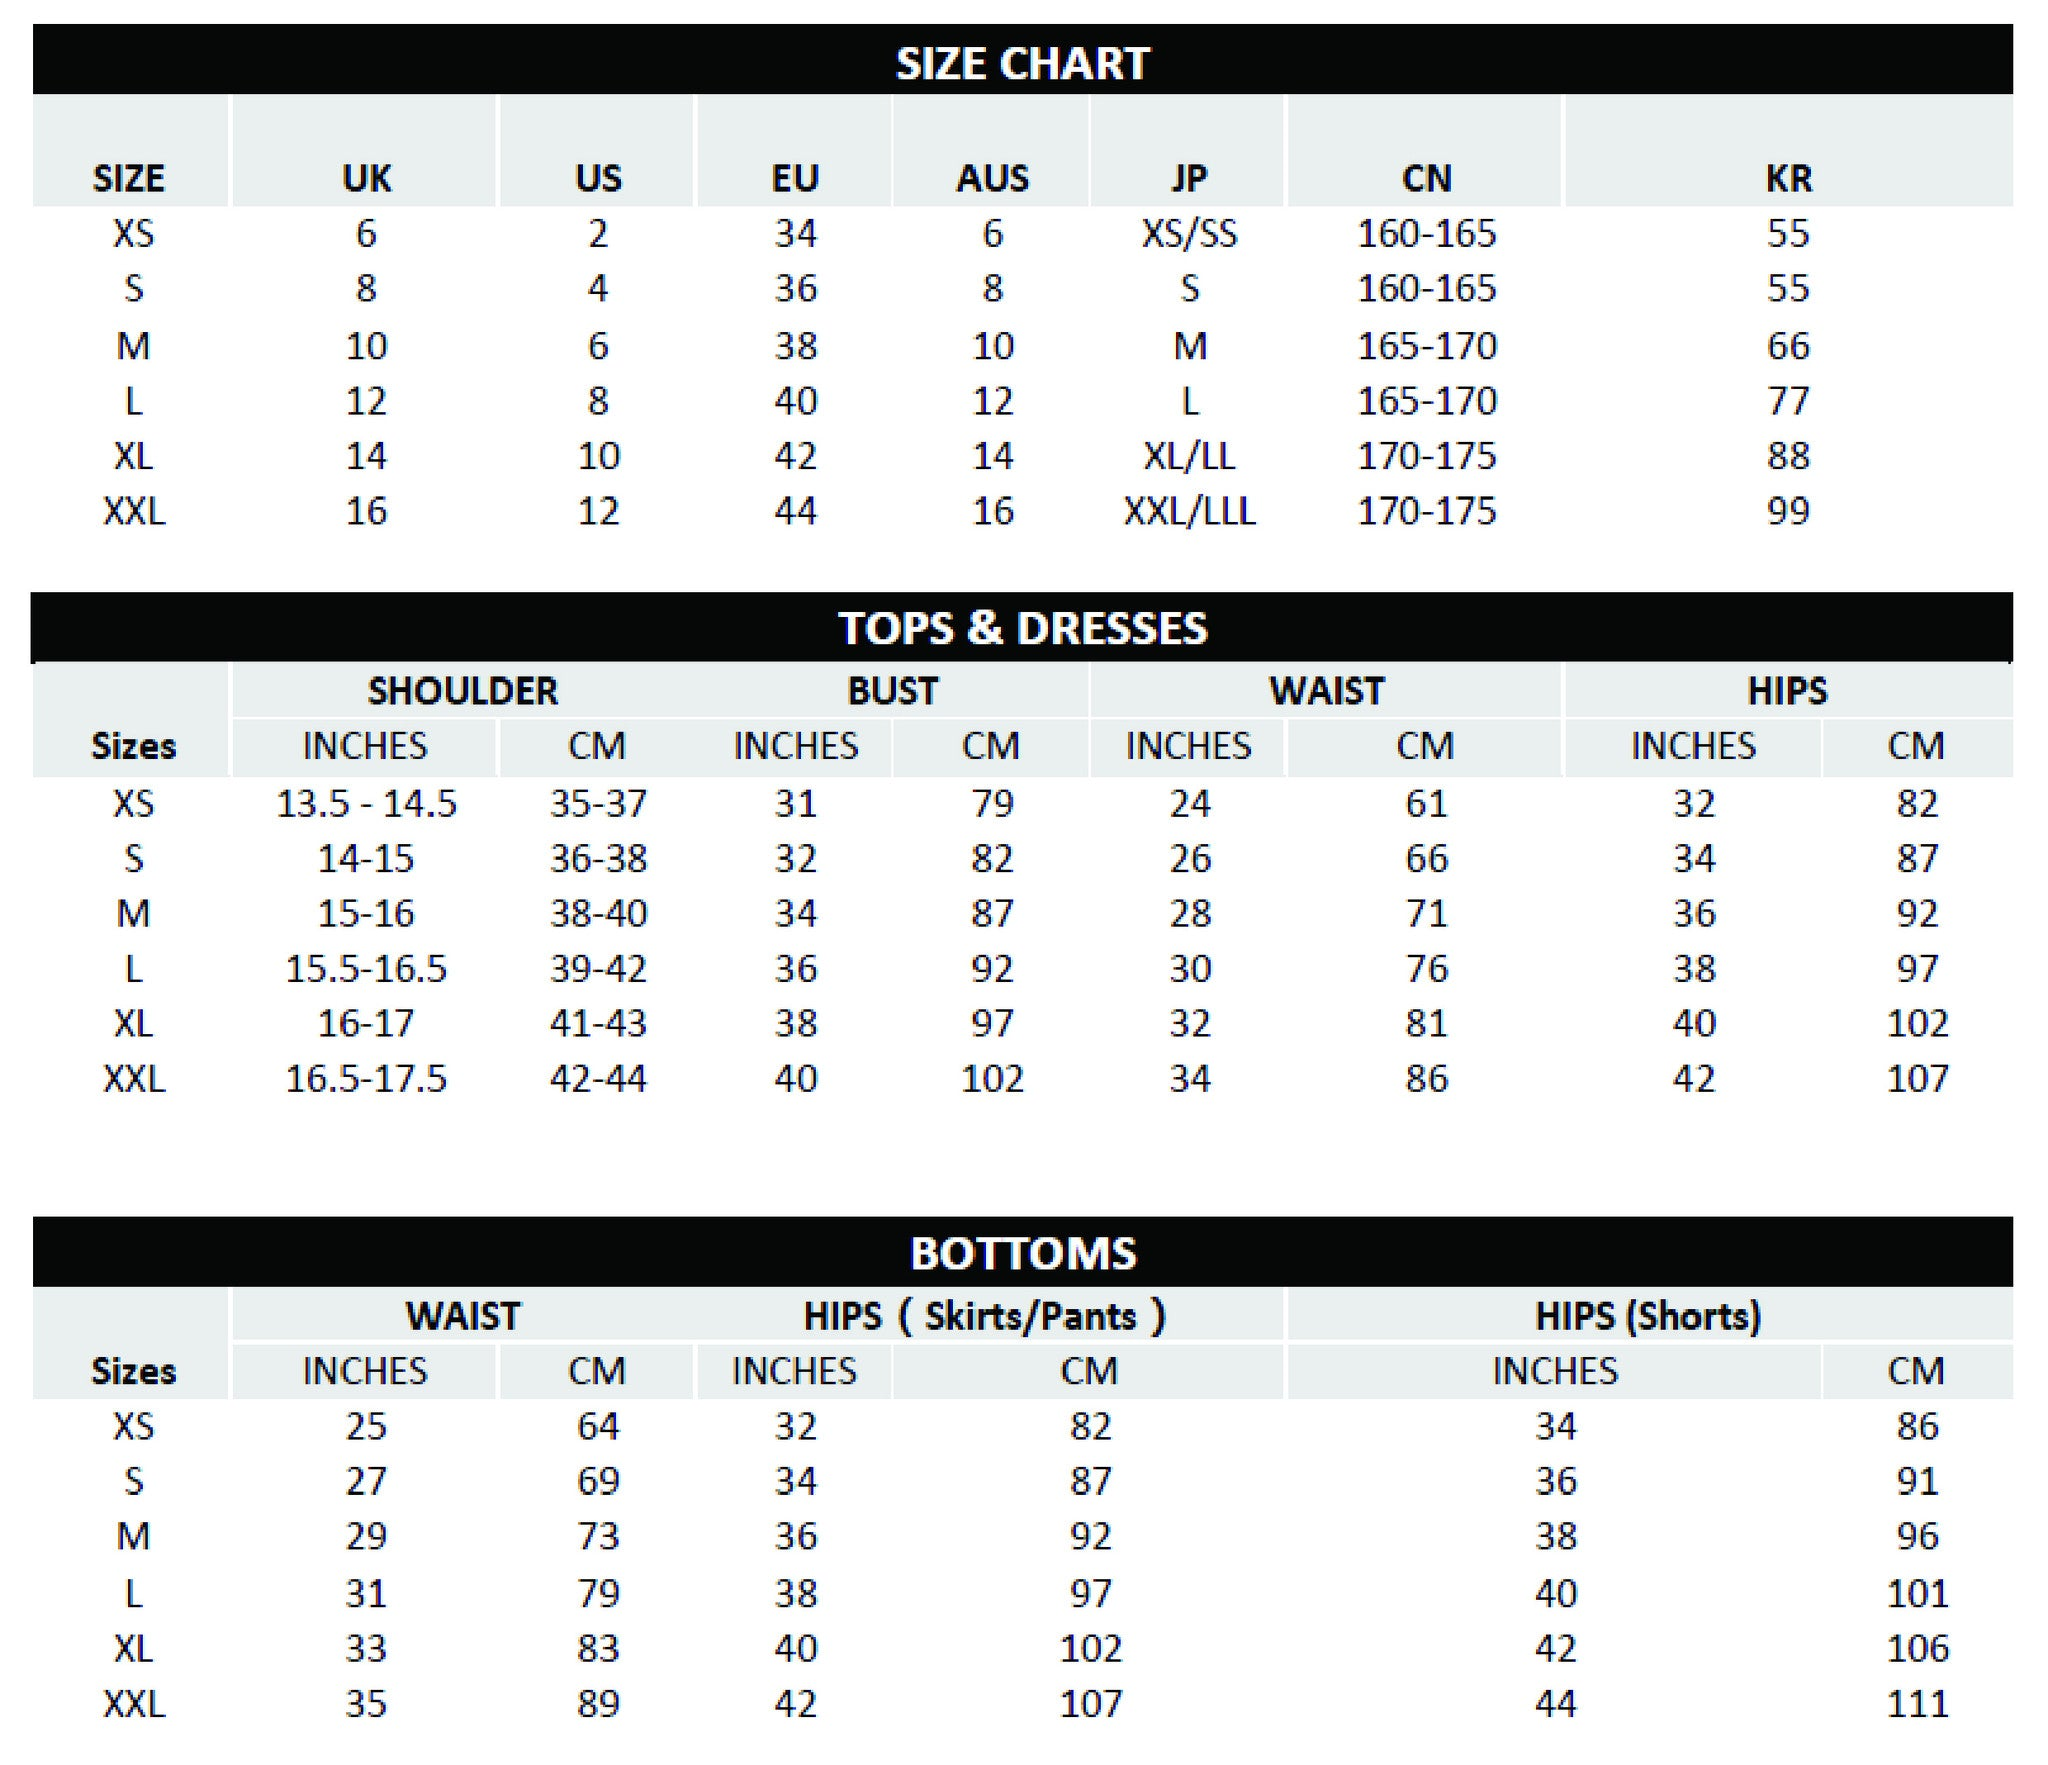 Measurements Shown In The Size Guide Refer To Body Measurements And Not Measurements Of The Garment